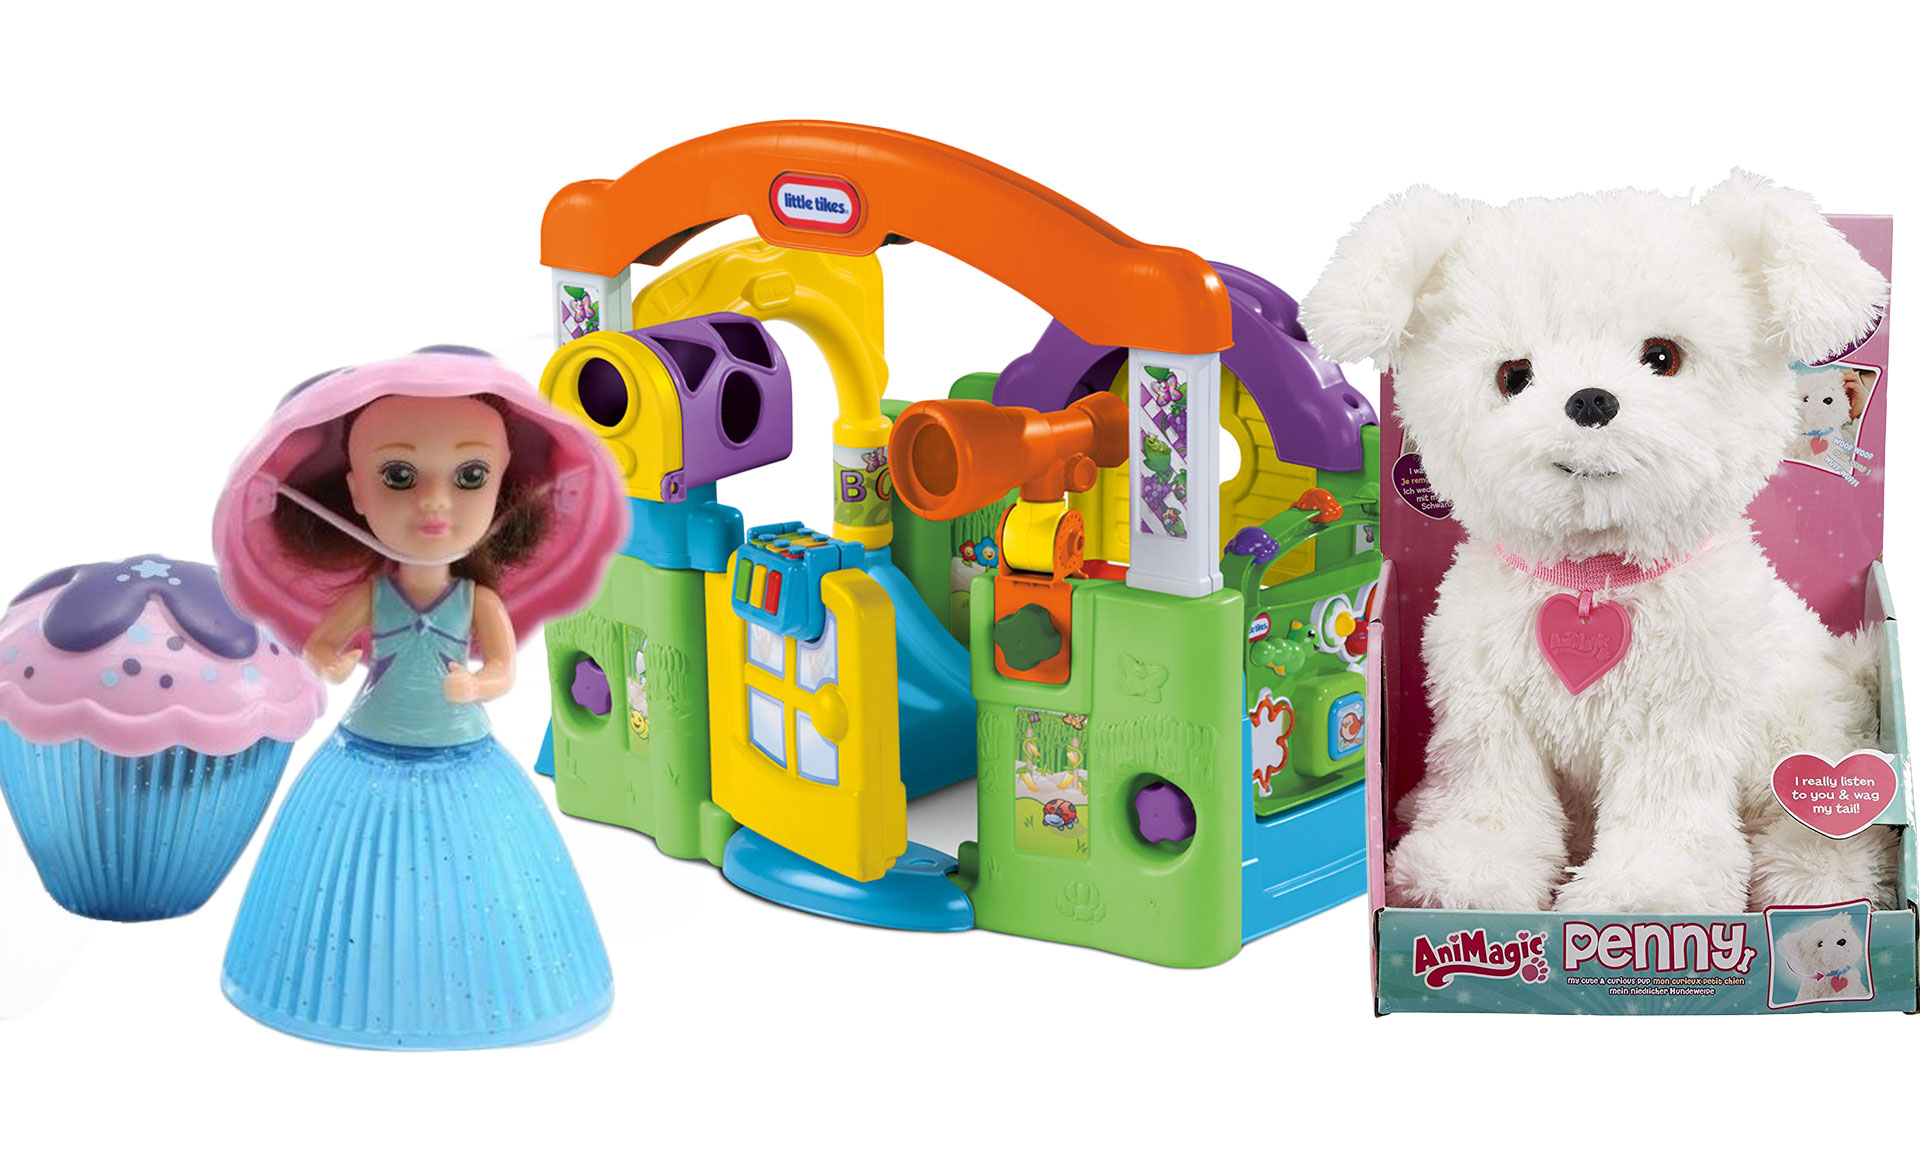 Toys sold in Argos, Smyths and Amazon recalled over safety